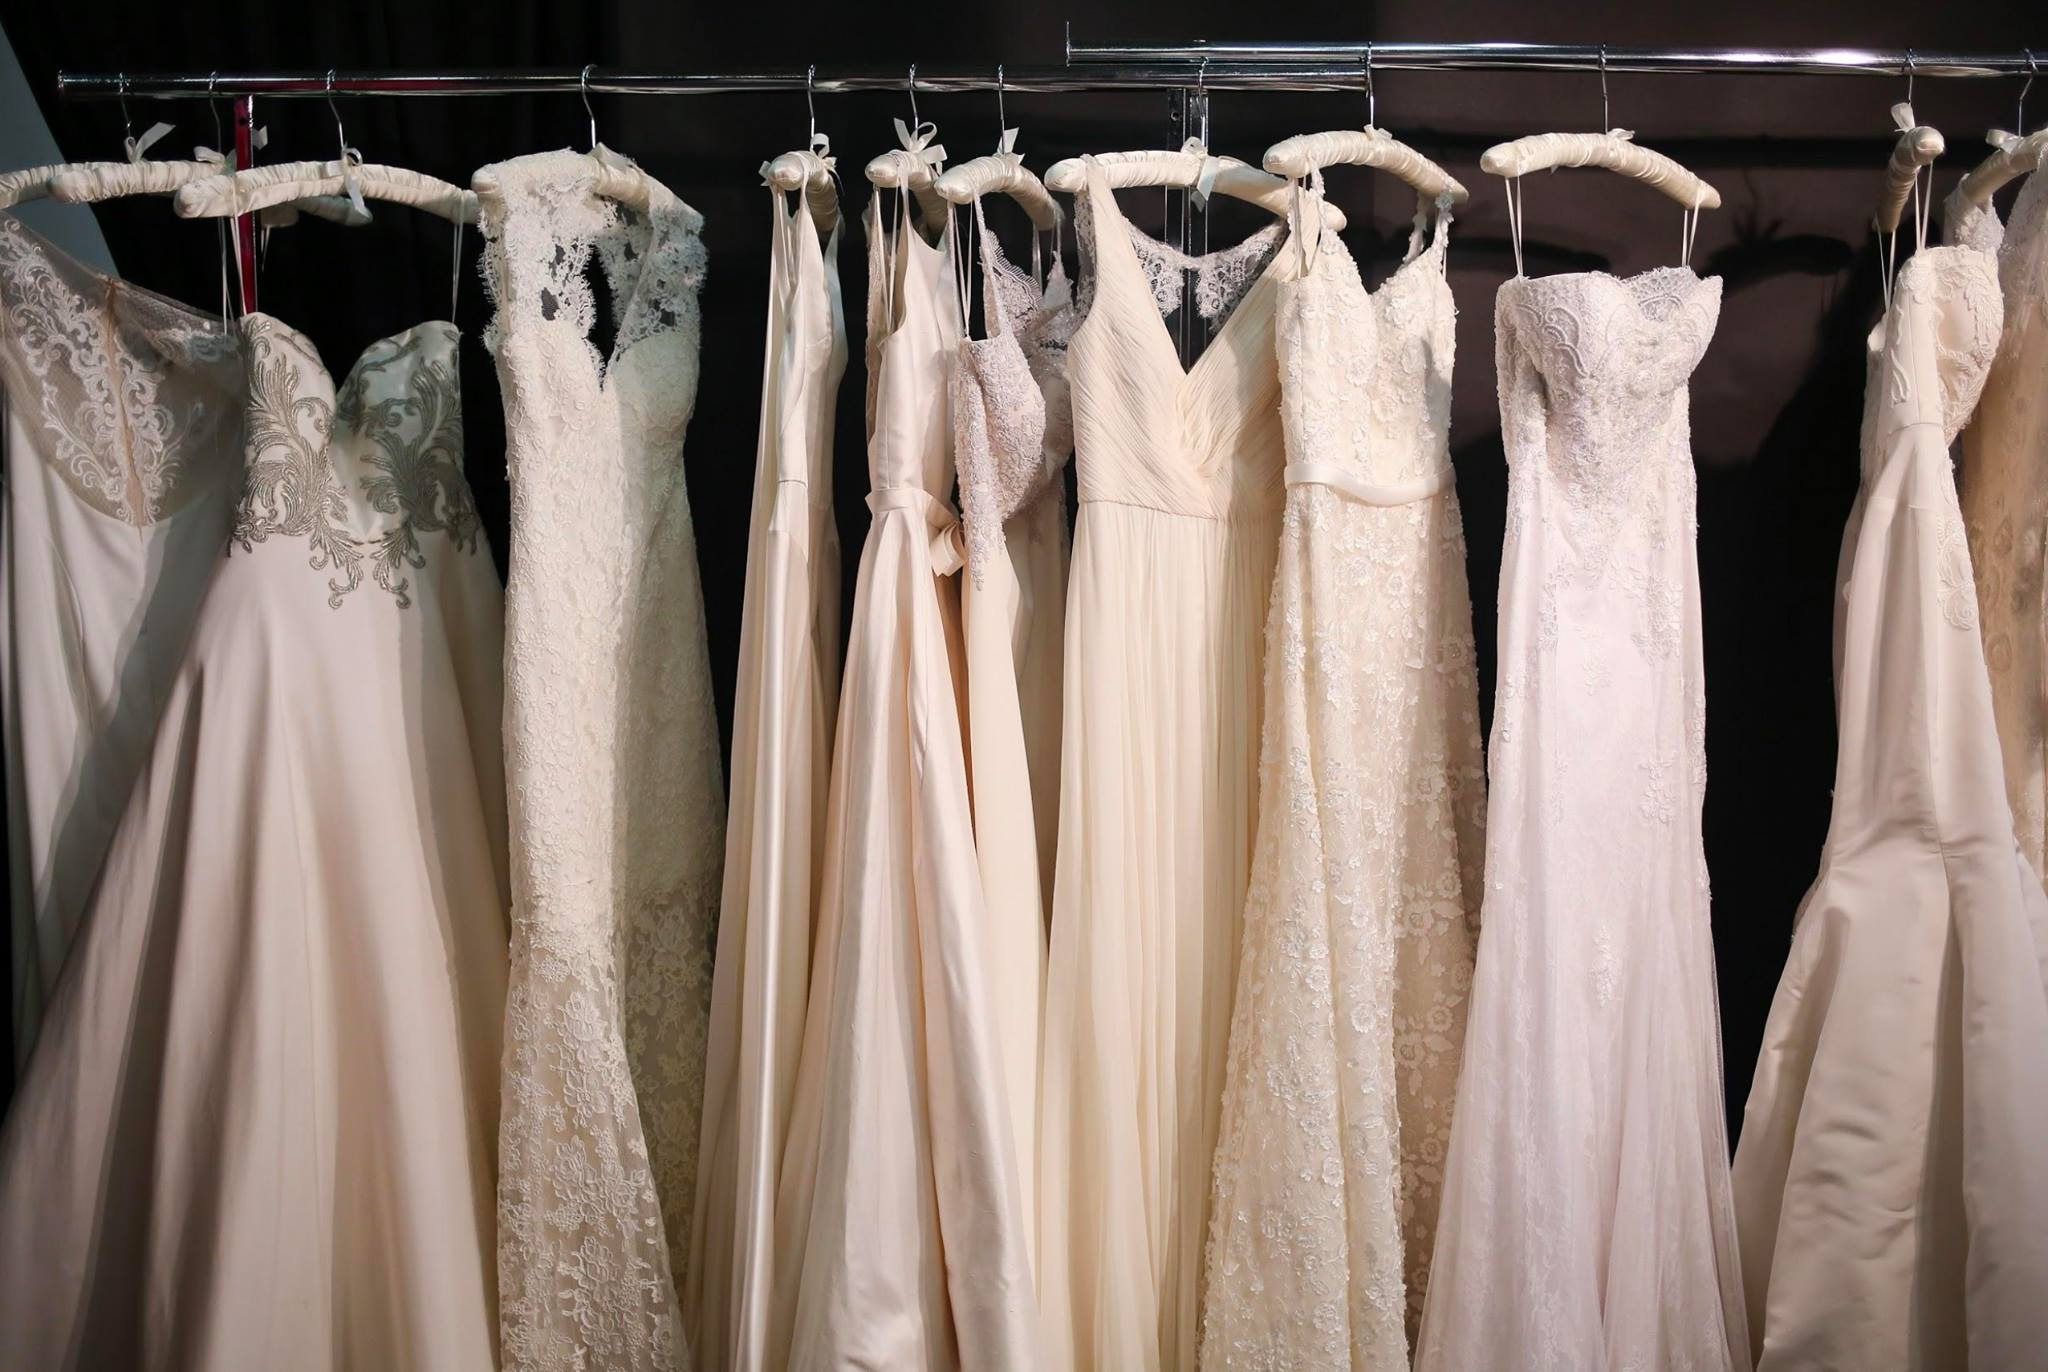 SB gowns on rack.jpg